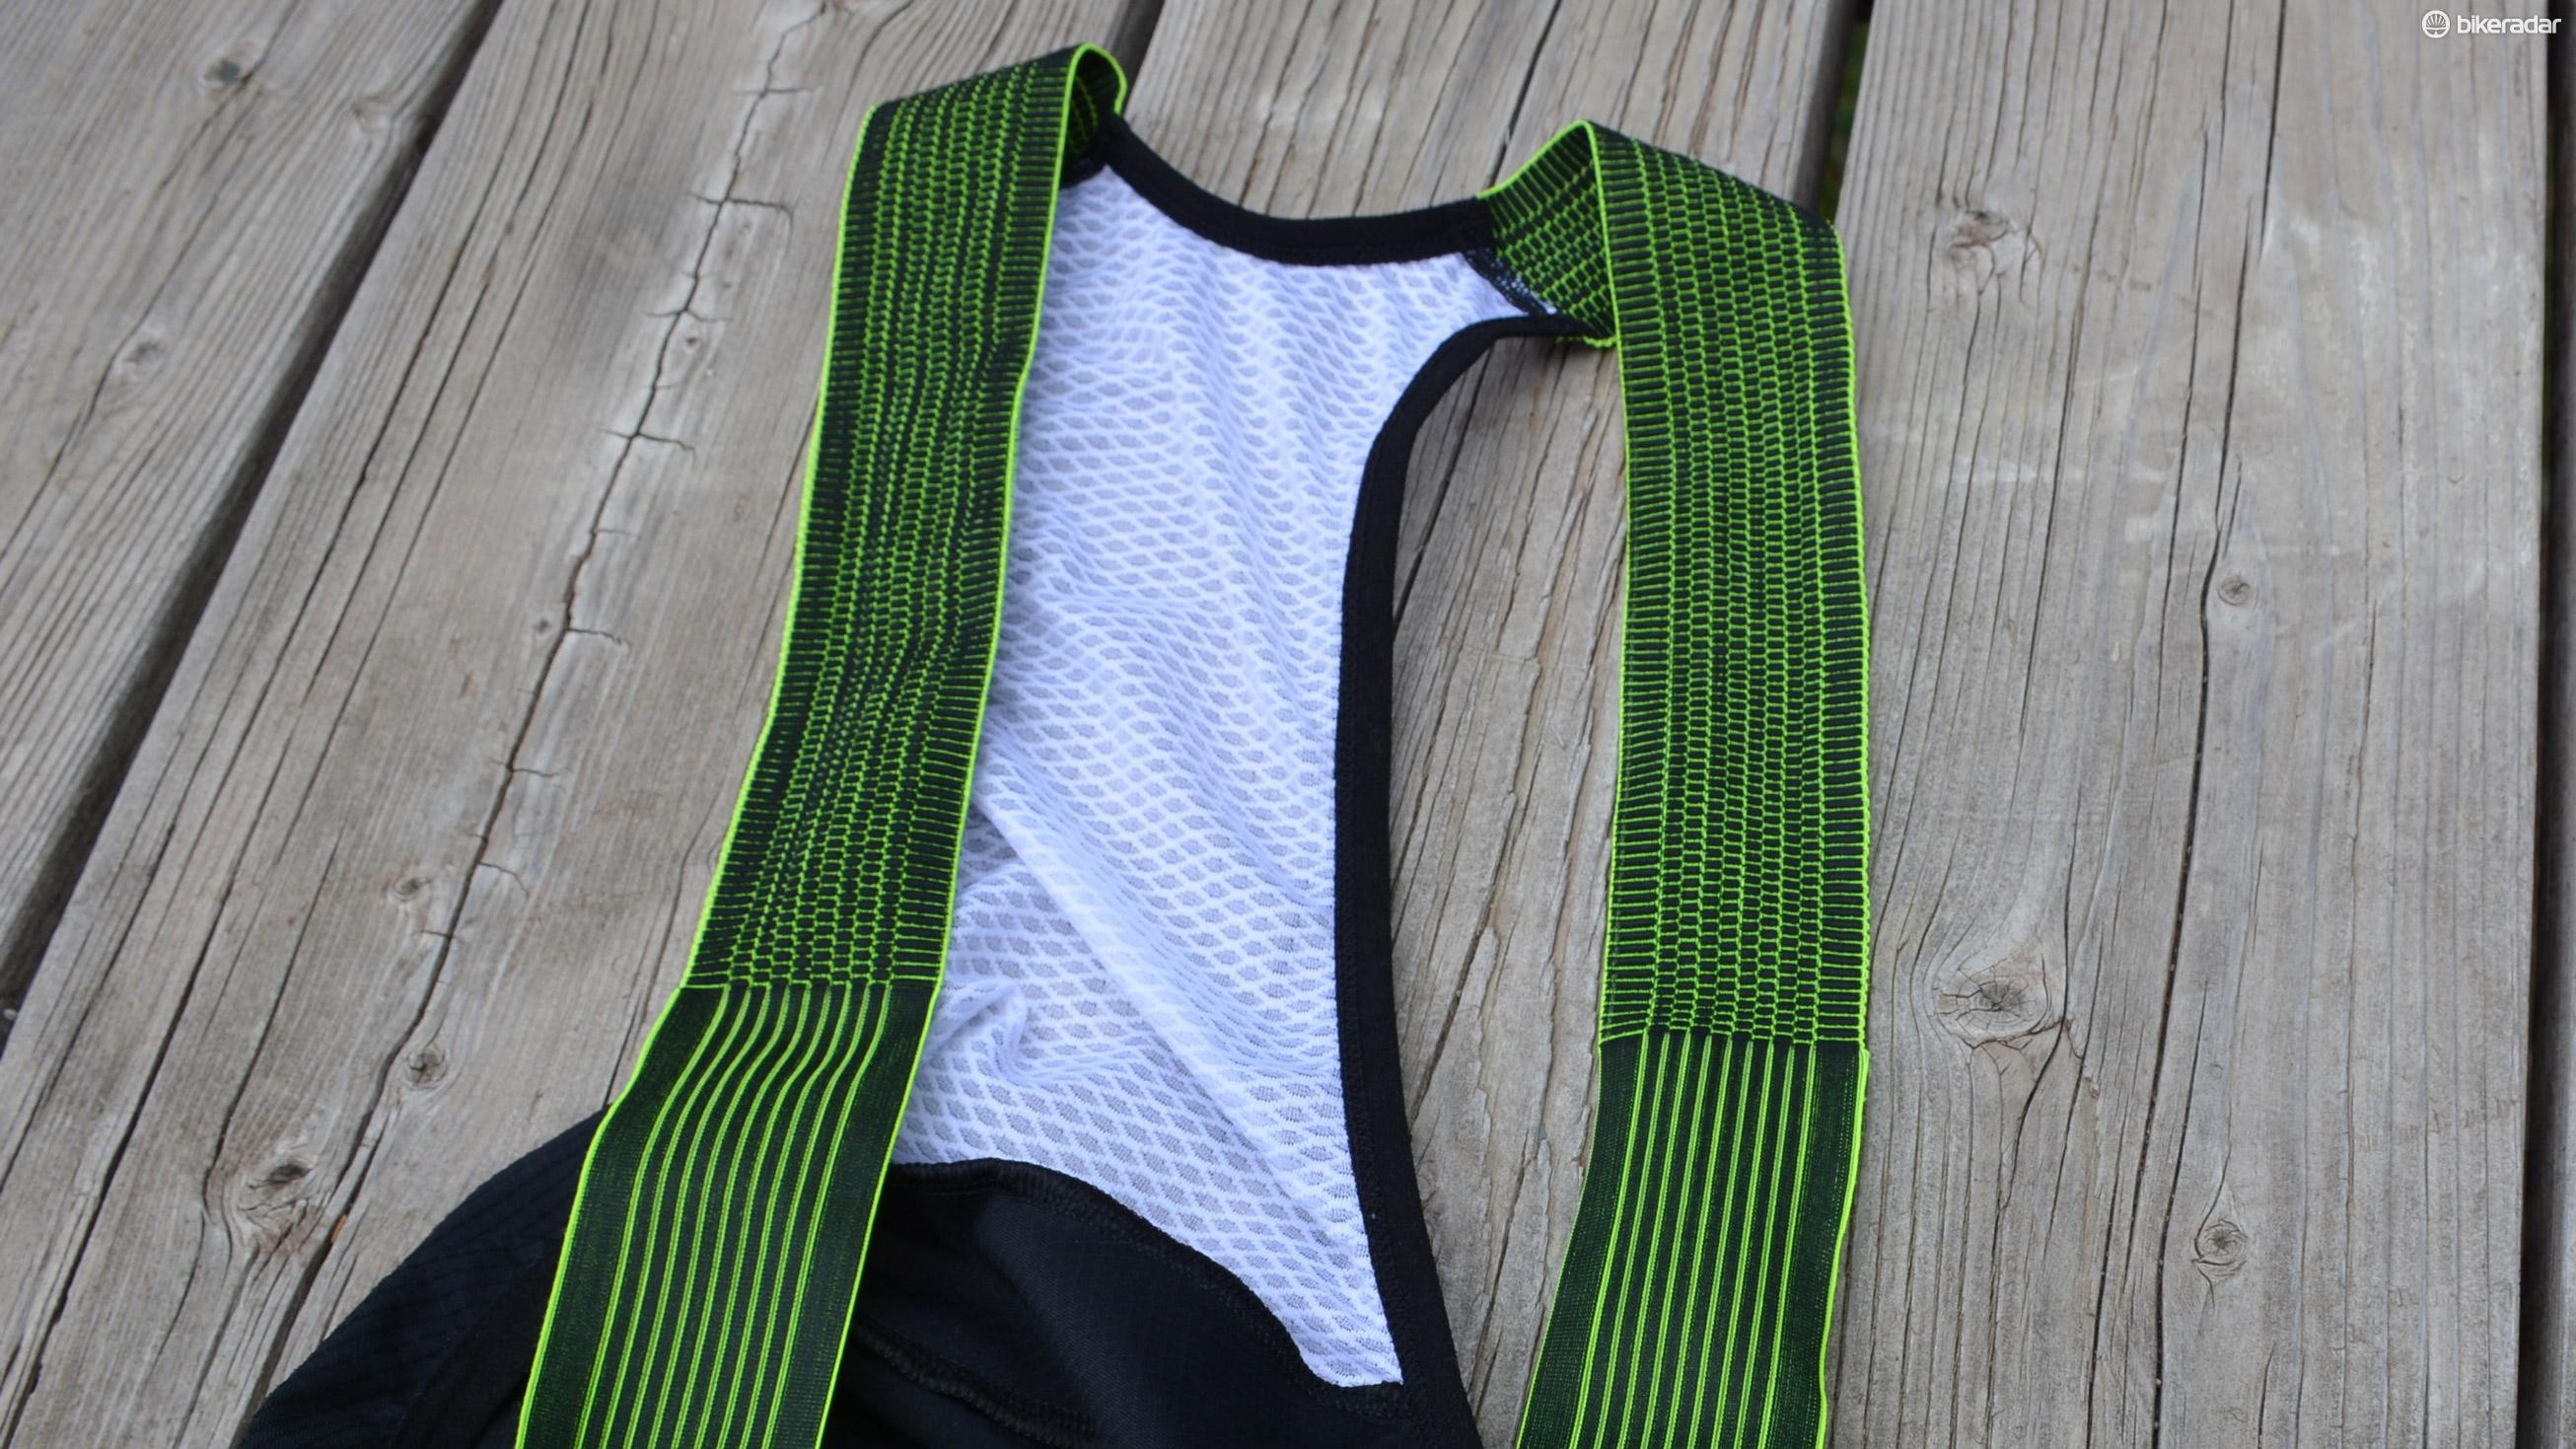 The bib straps switch from a purely vertical stretch to a more dynamic stretch halfway up